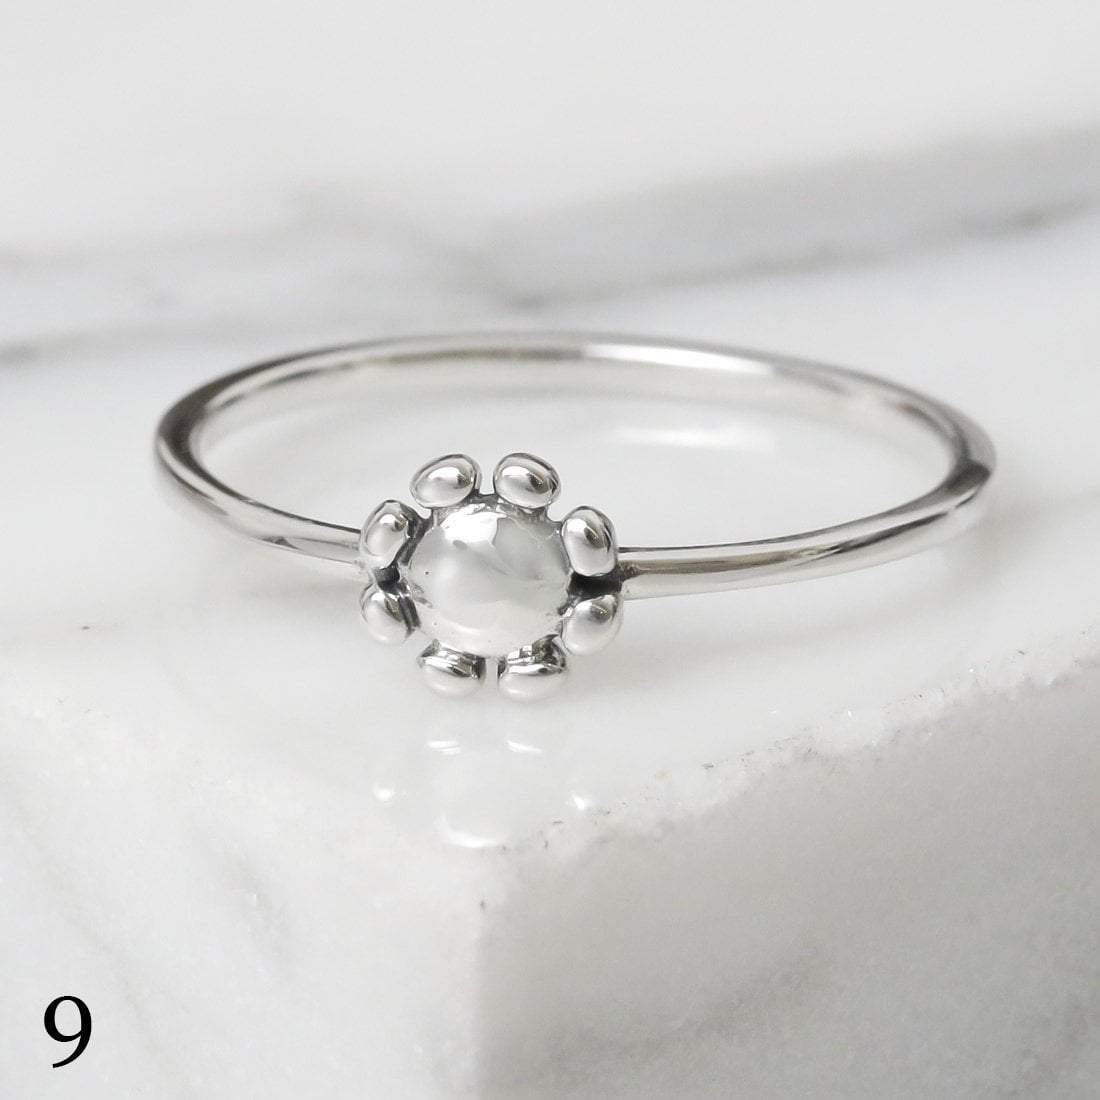 Midsummer Star Ring 9 / 5 12 Days of Festivities - Sample Sale 1